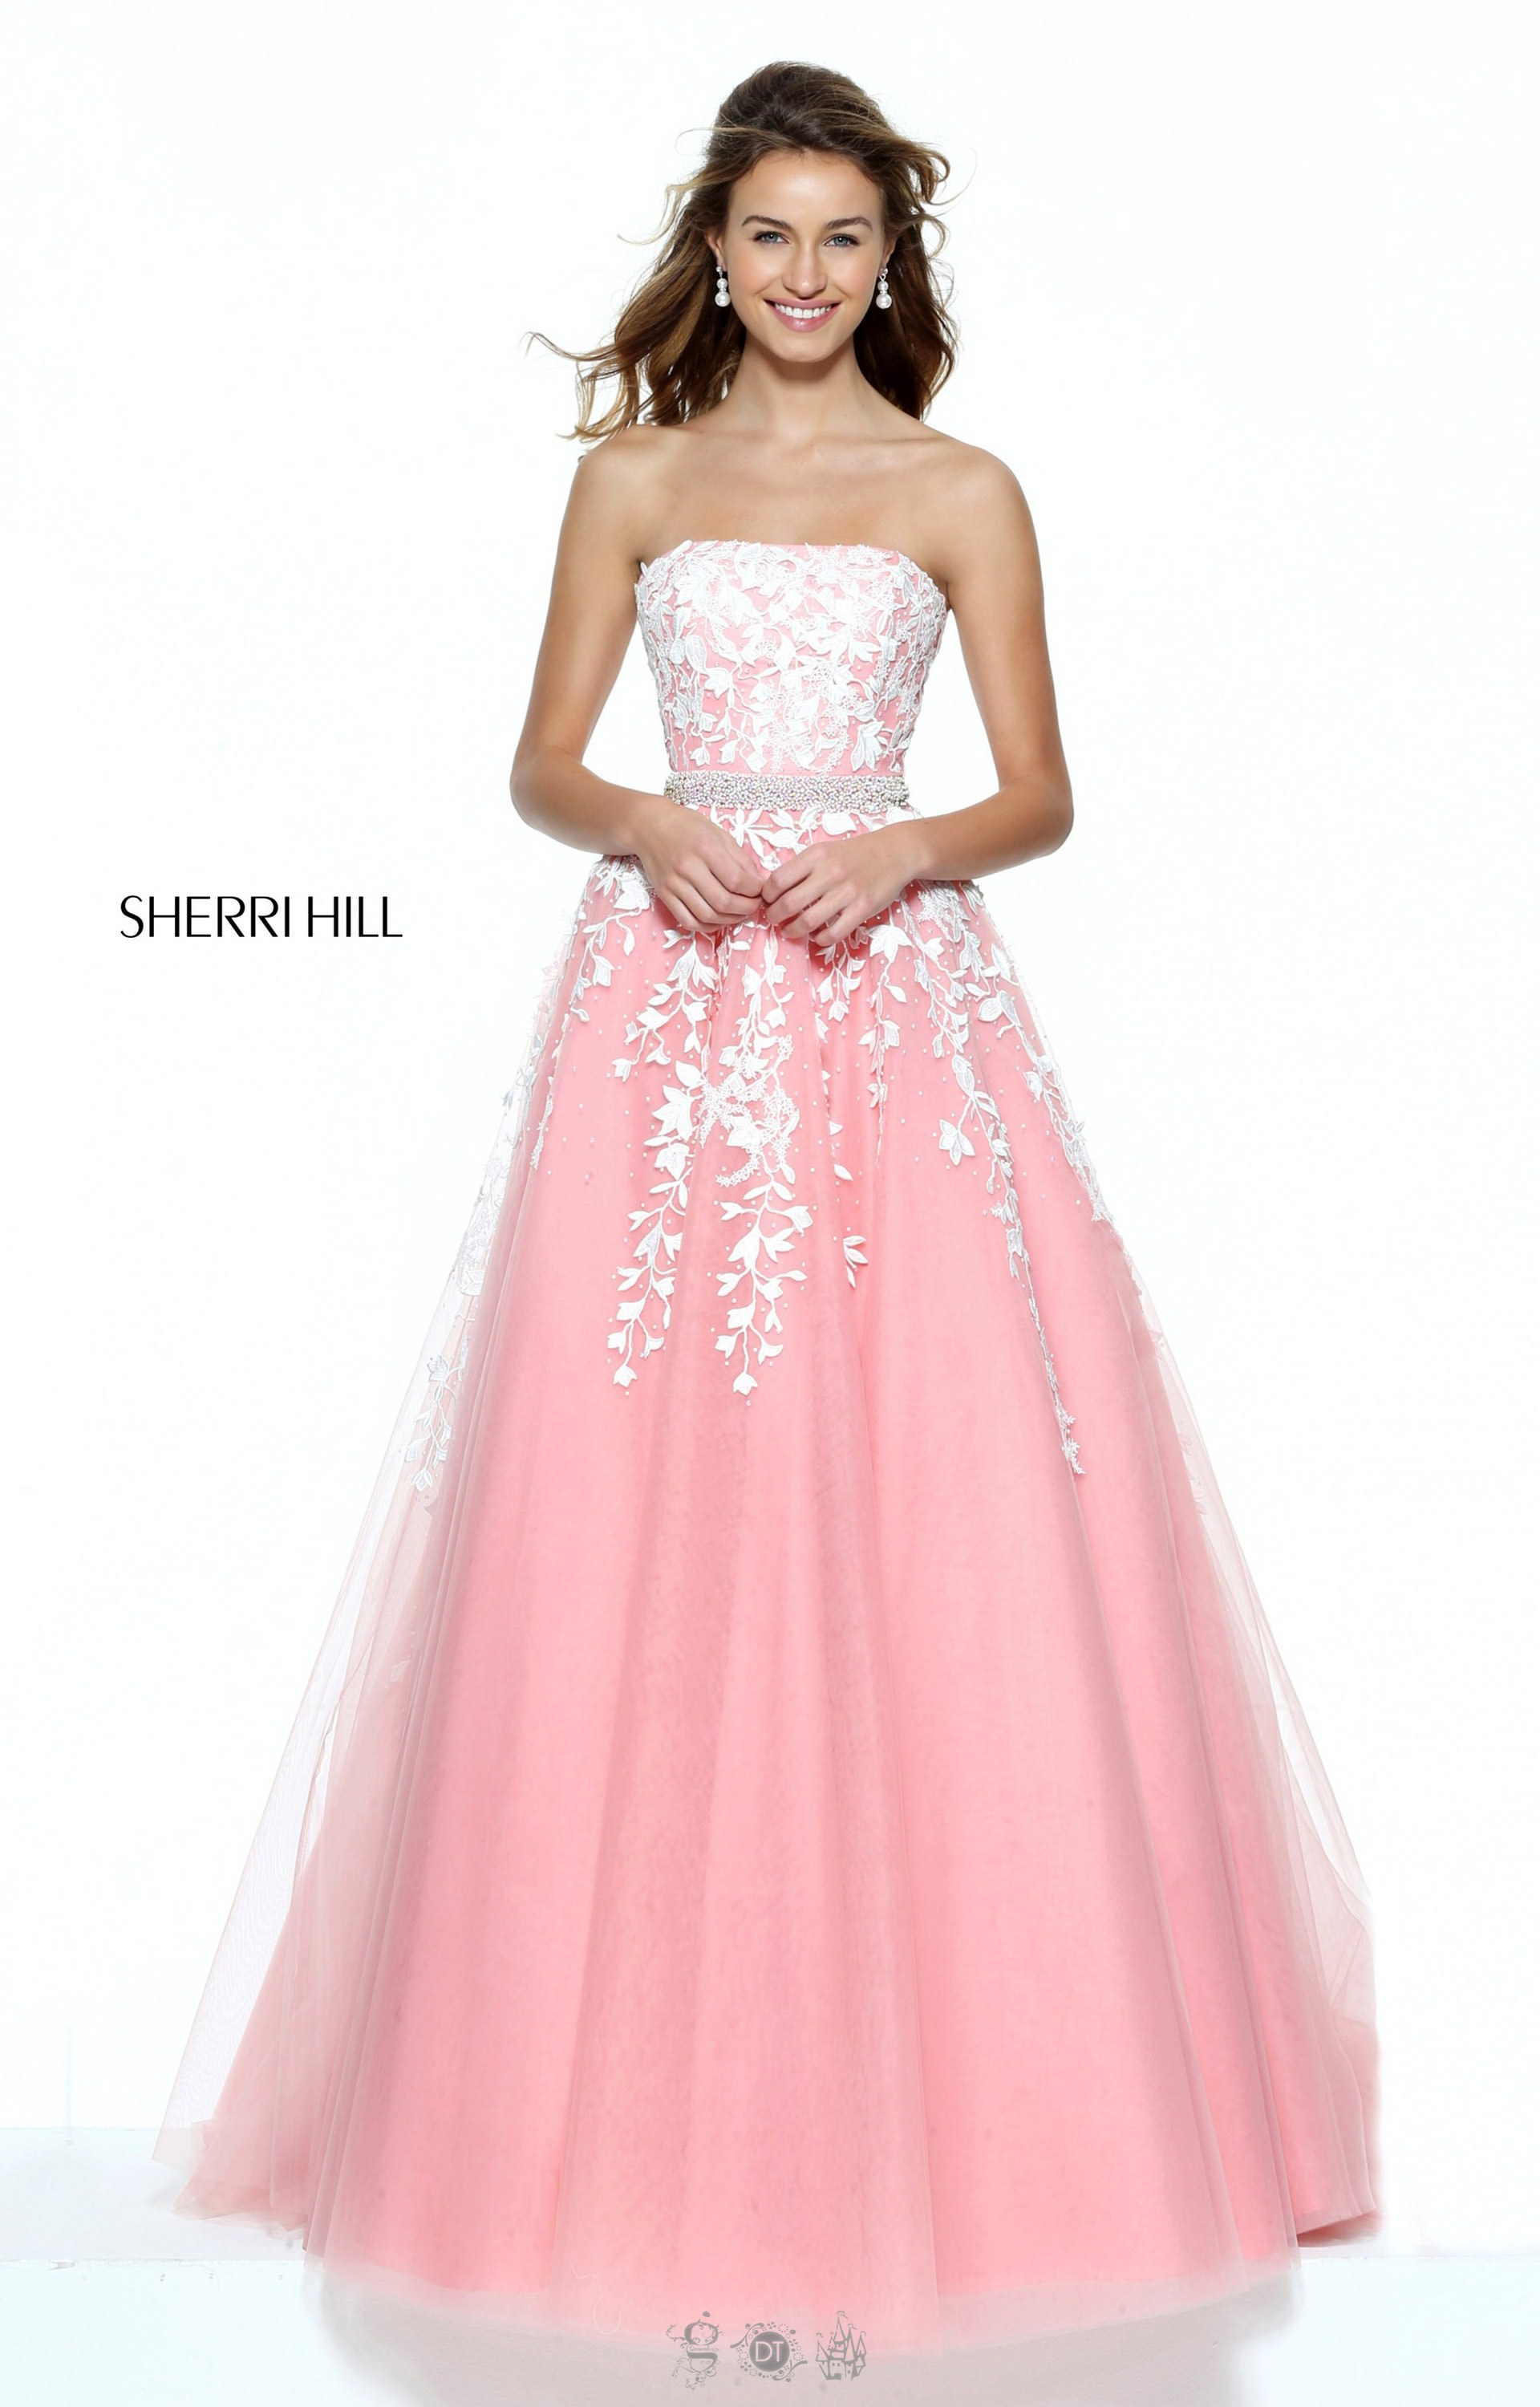 Sherri Hill 50864 - Strapless Ball Gown with Floral Prom Dress